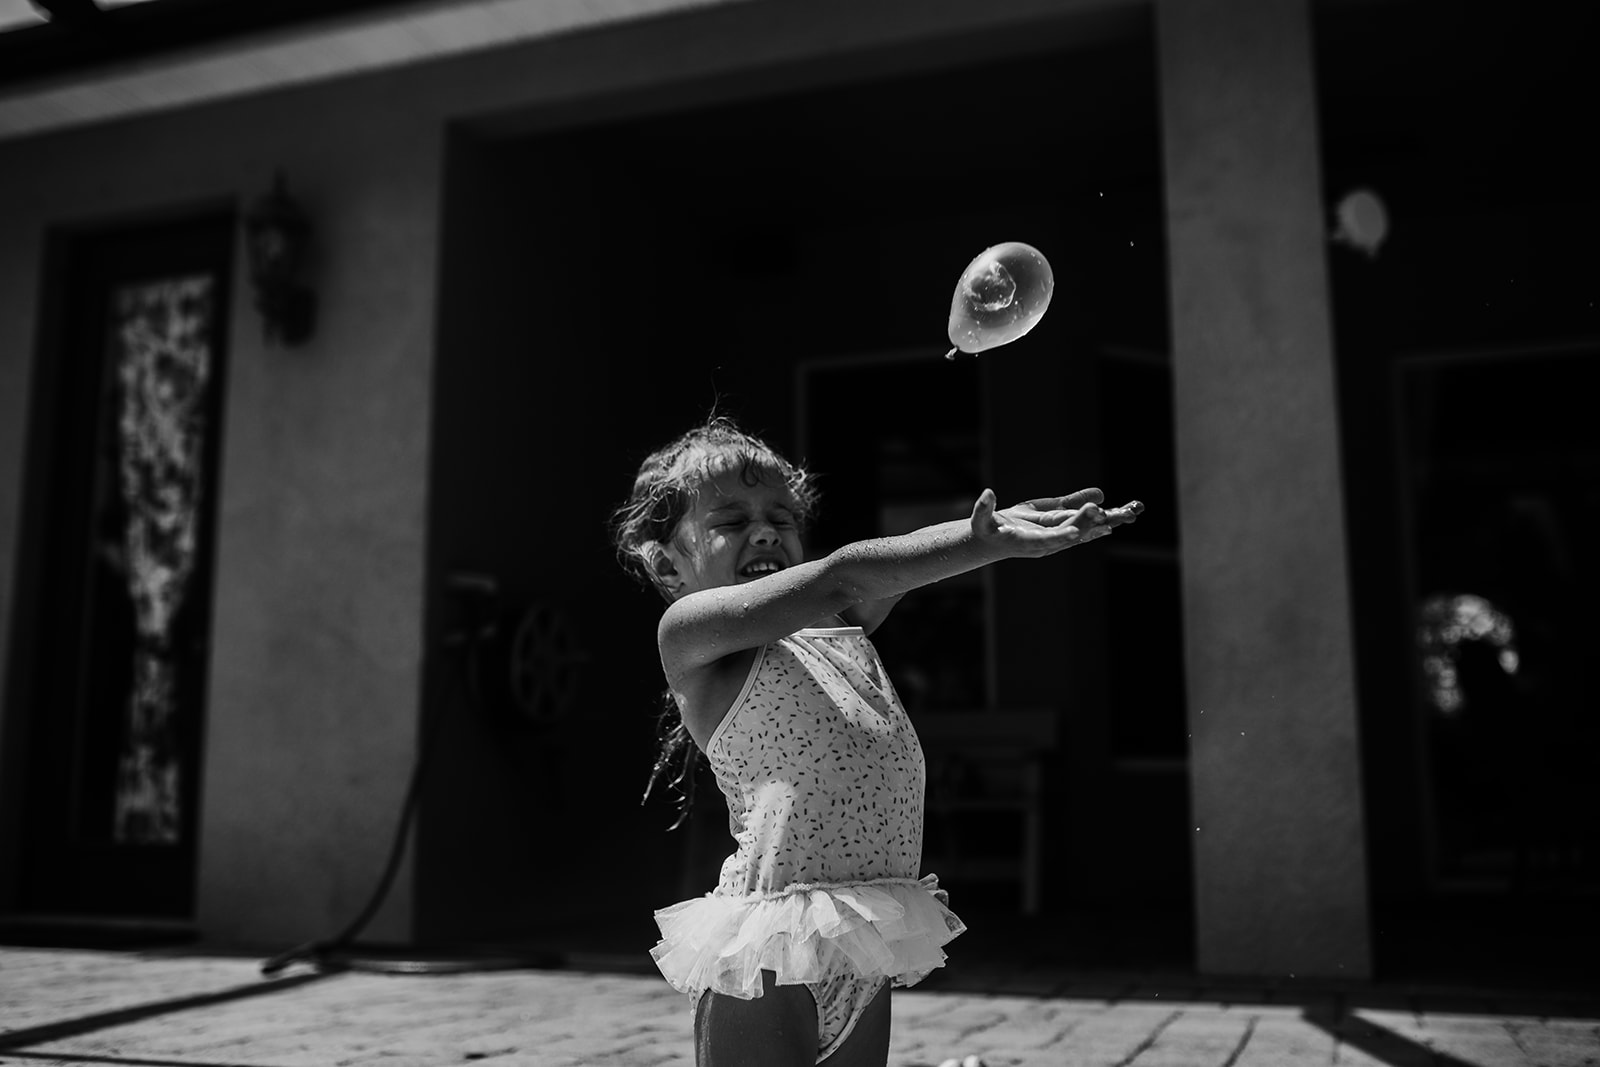 Little girl reaches her arms out to catch water balloon thrown at her